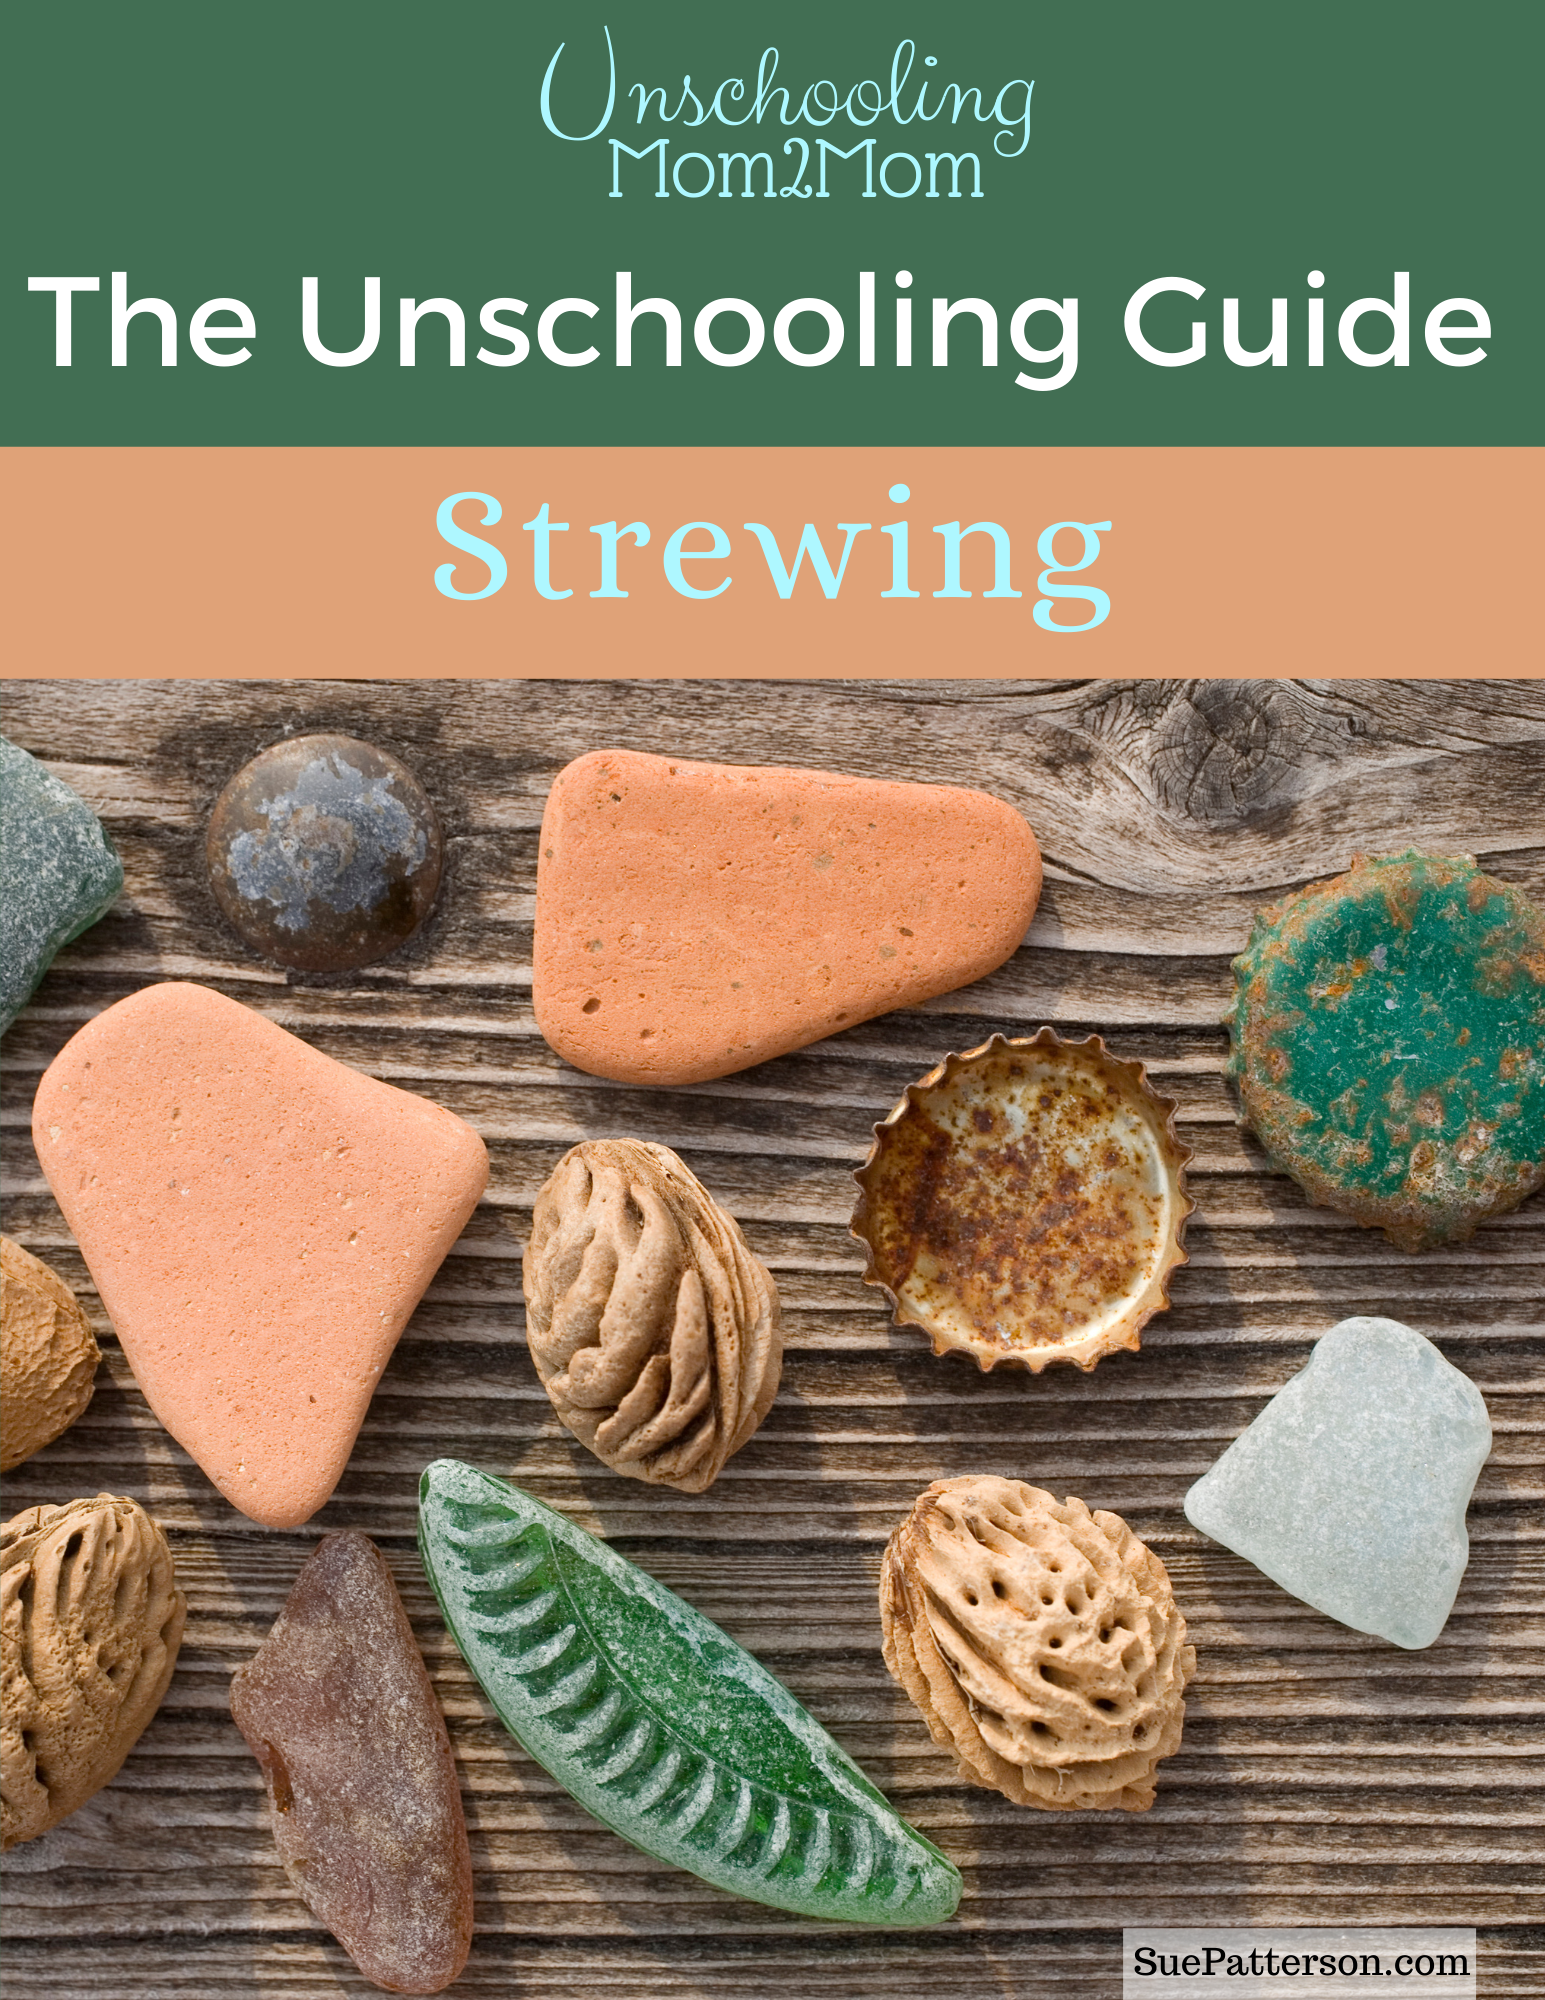 Practical suggestions and ideas for how unschoolers use strewing in their homes